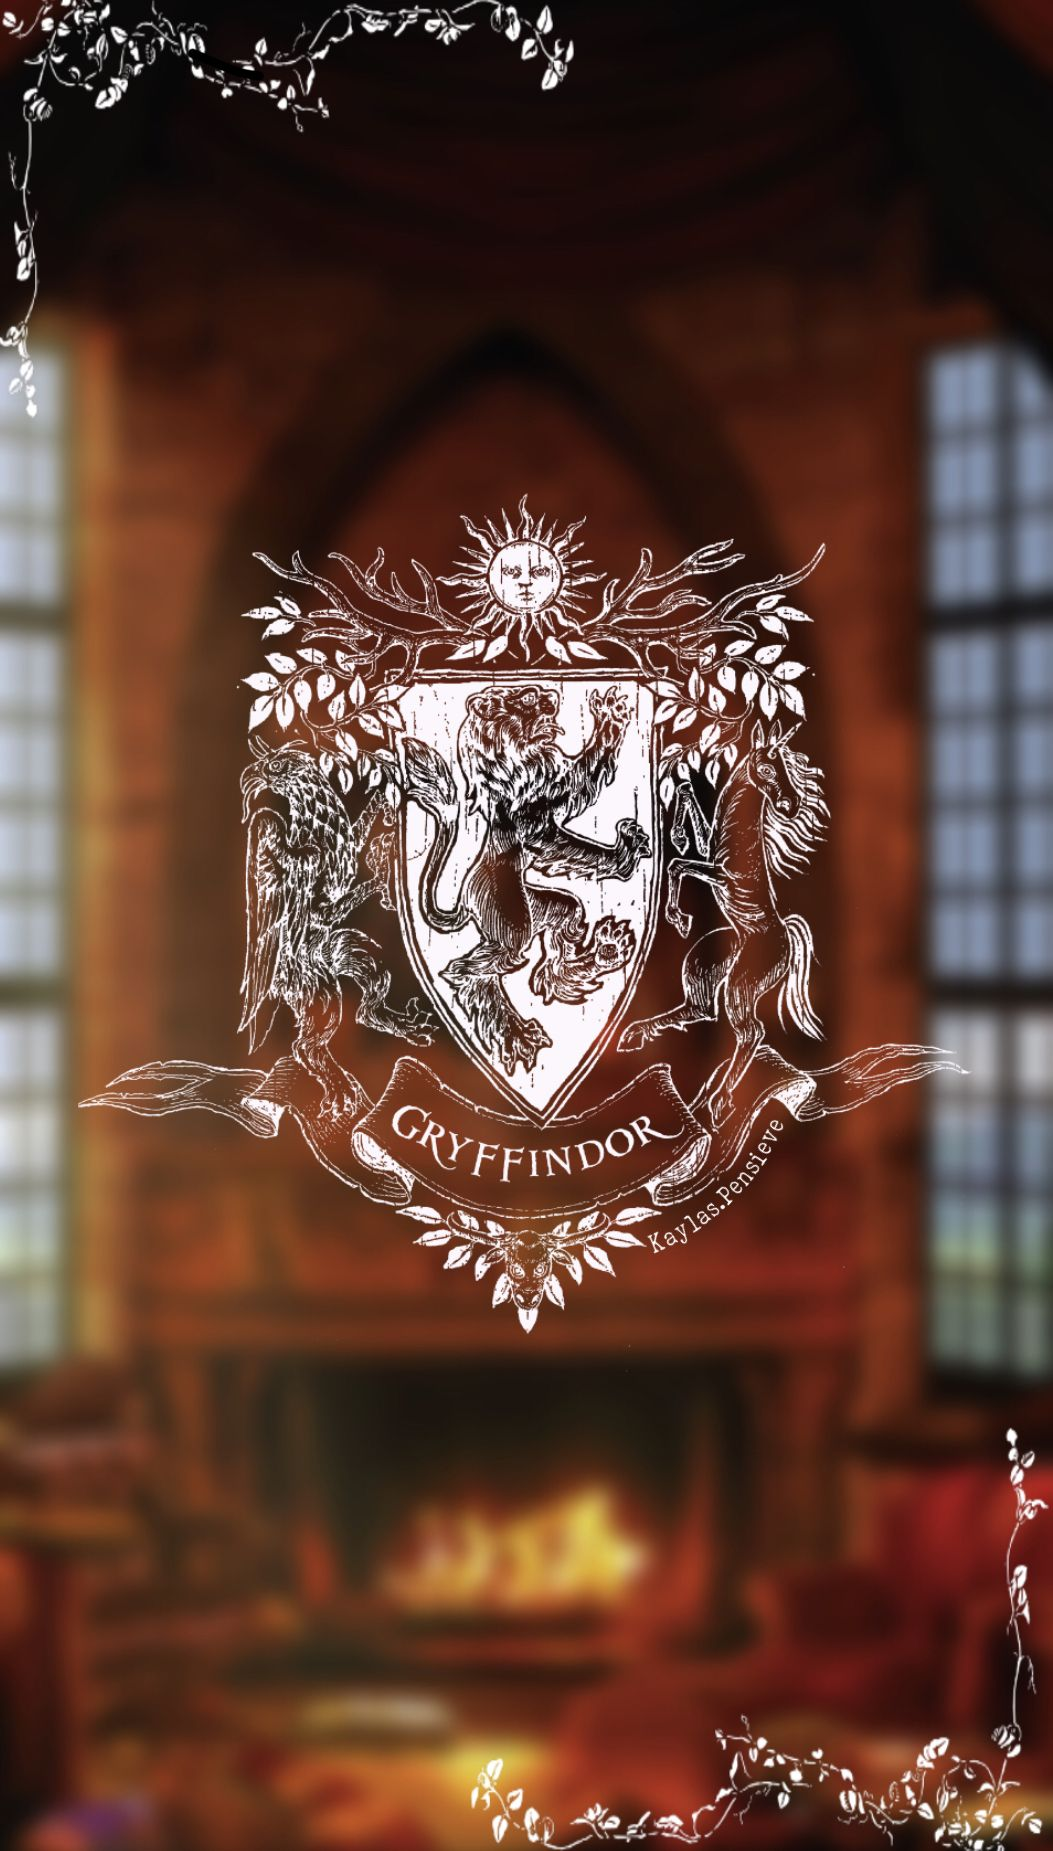 Enjoy this Gryffindor themed background for your mobile